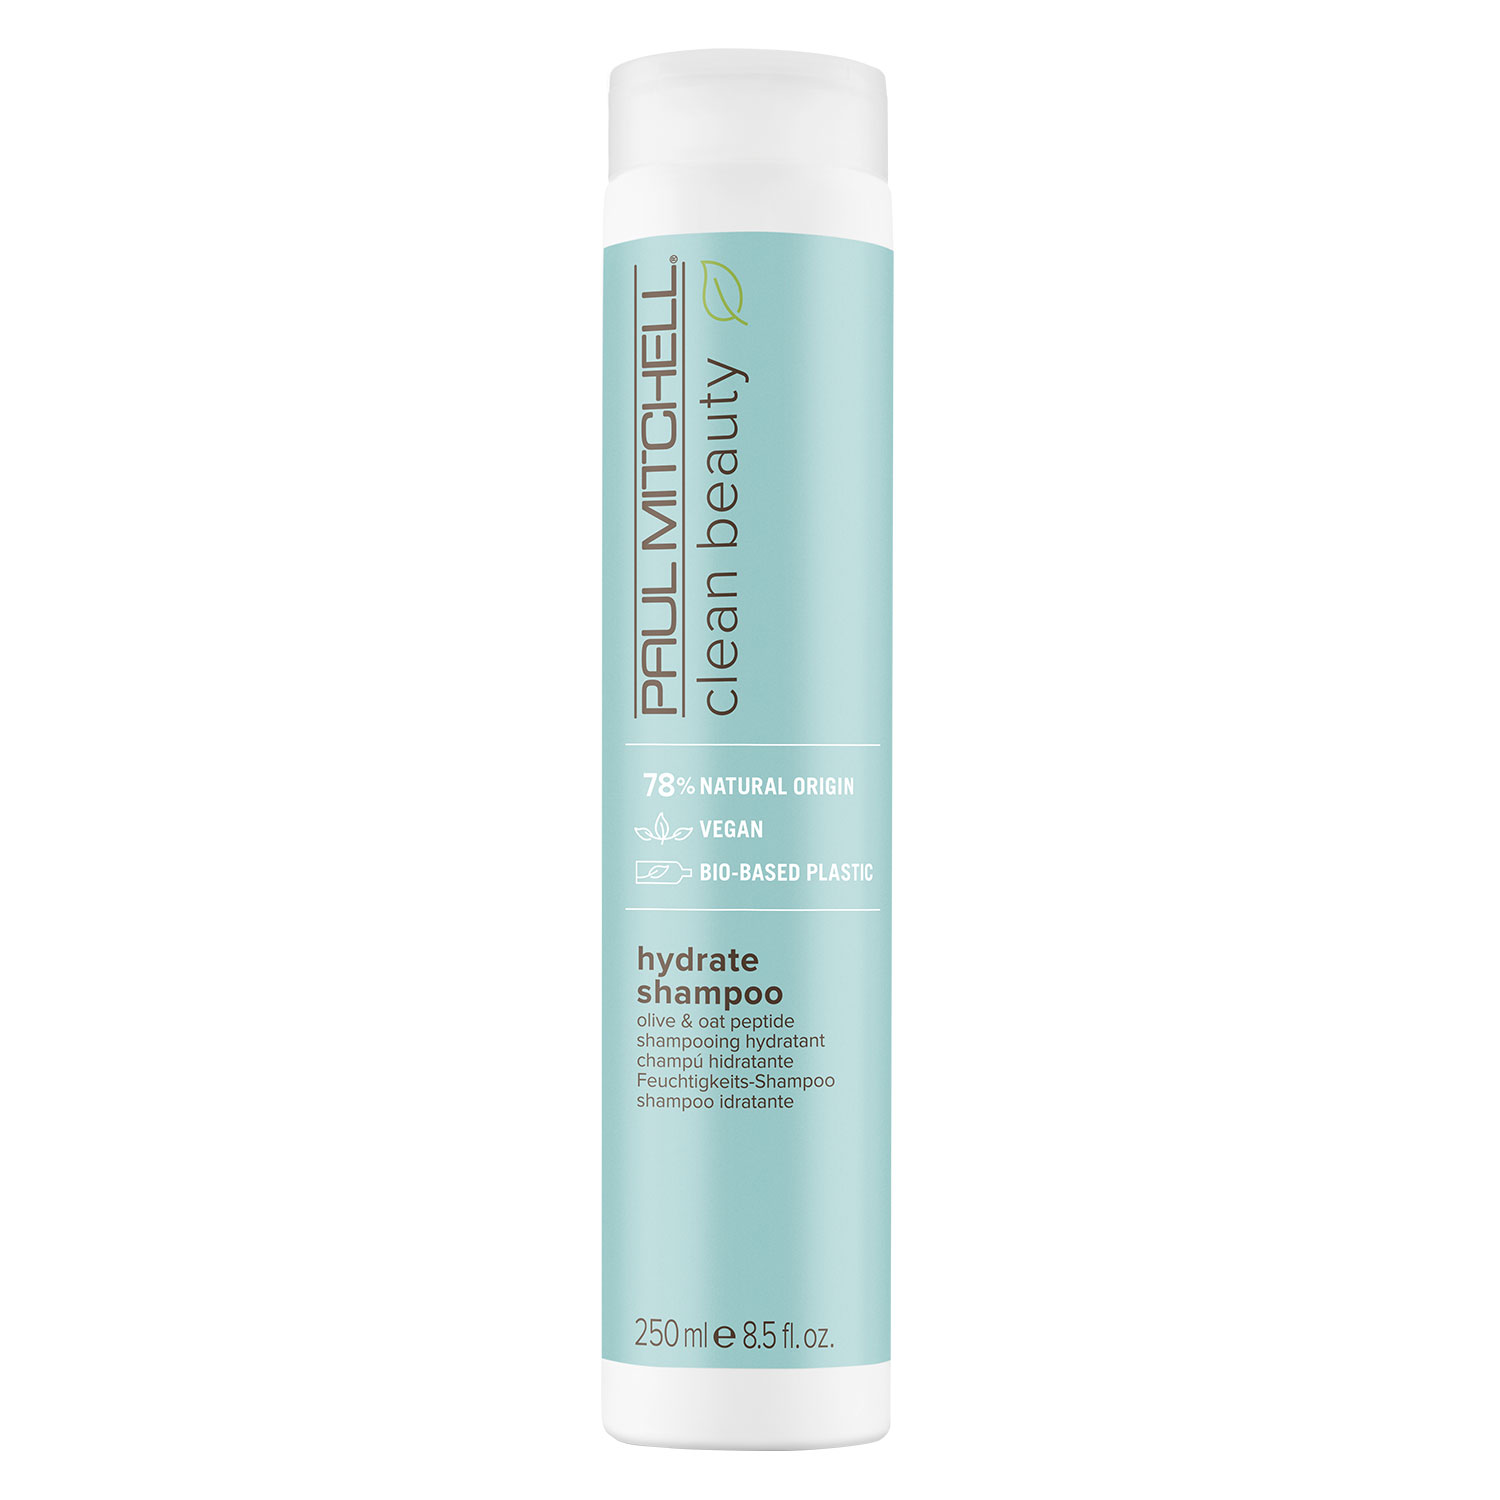 Paul Mitchell Clean Beauty - Hydrate Shampoo